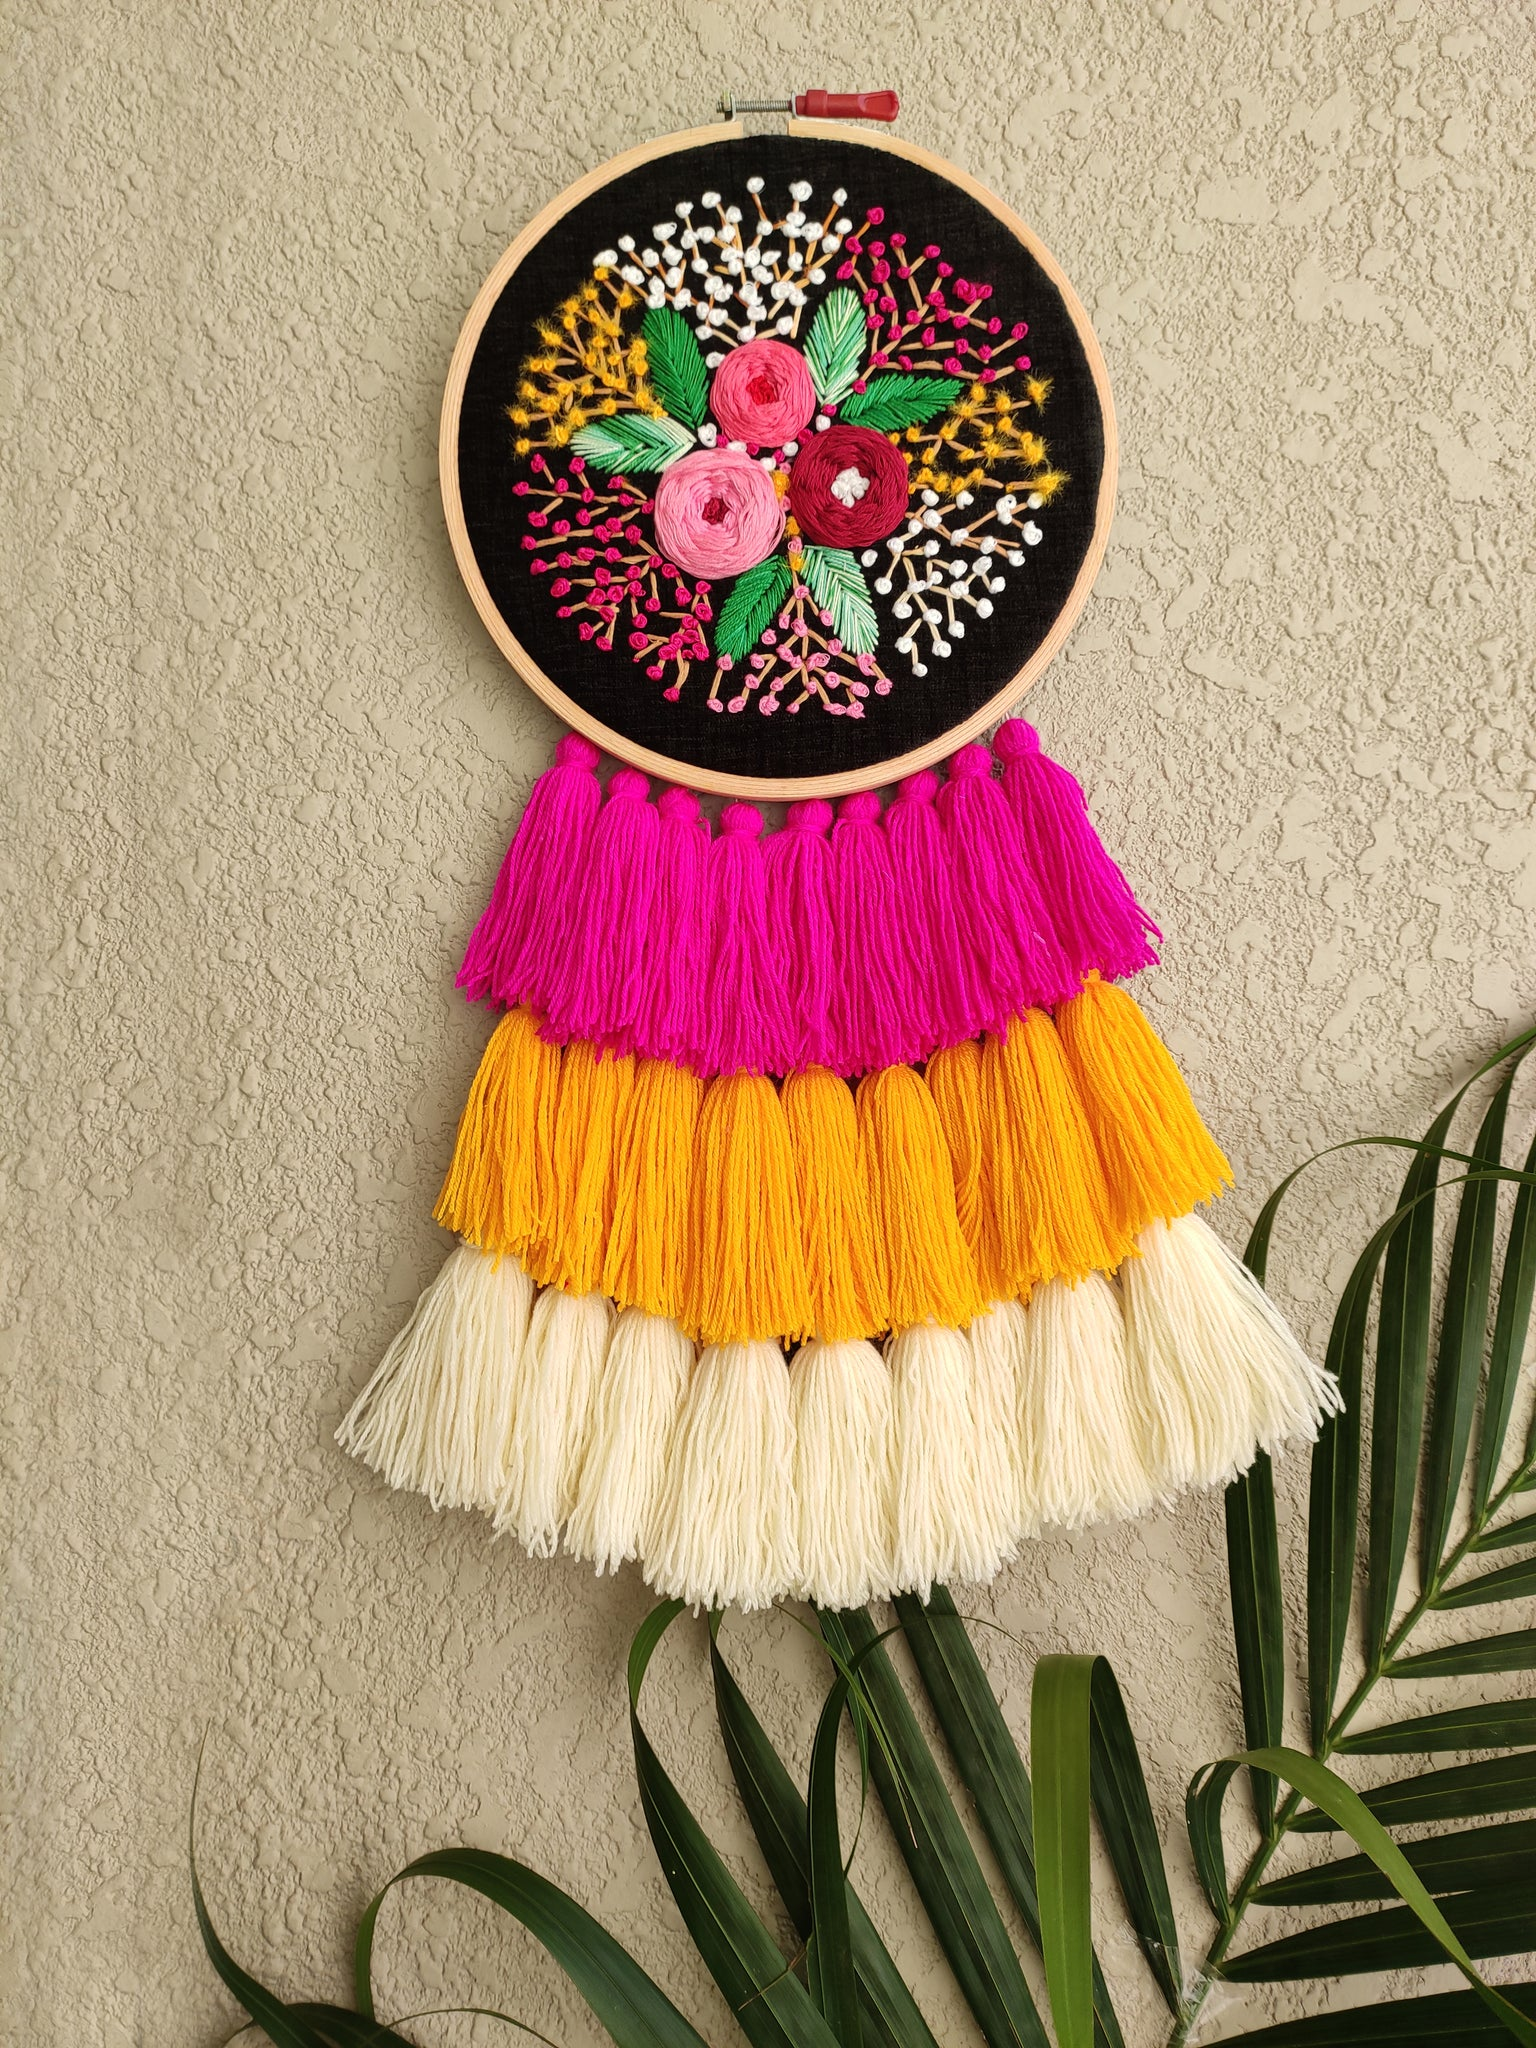 Hand Embroidered Black Floral Dreamcatcher - The Tassle Life